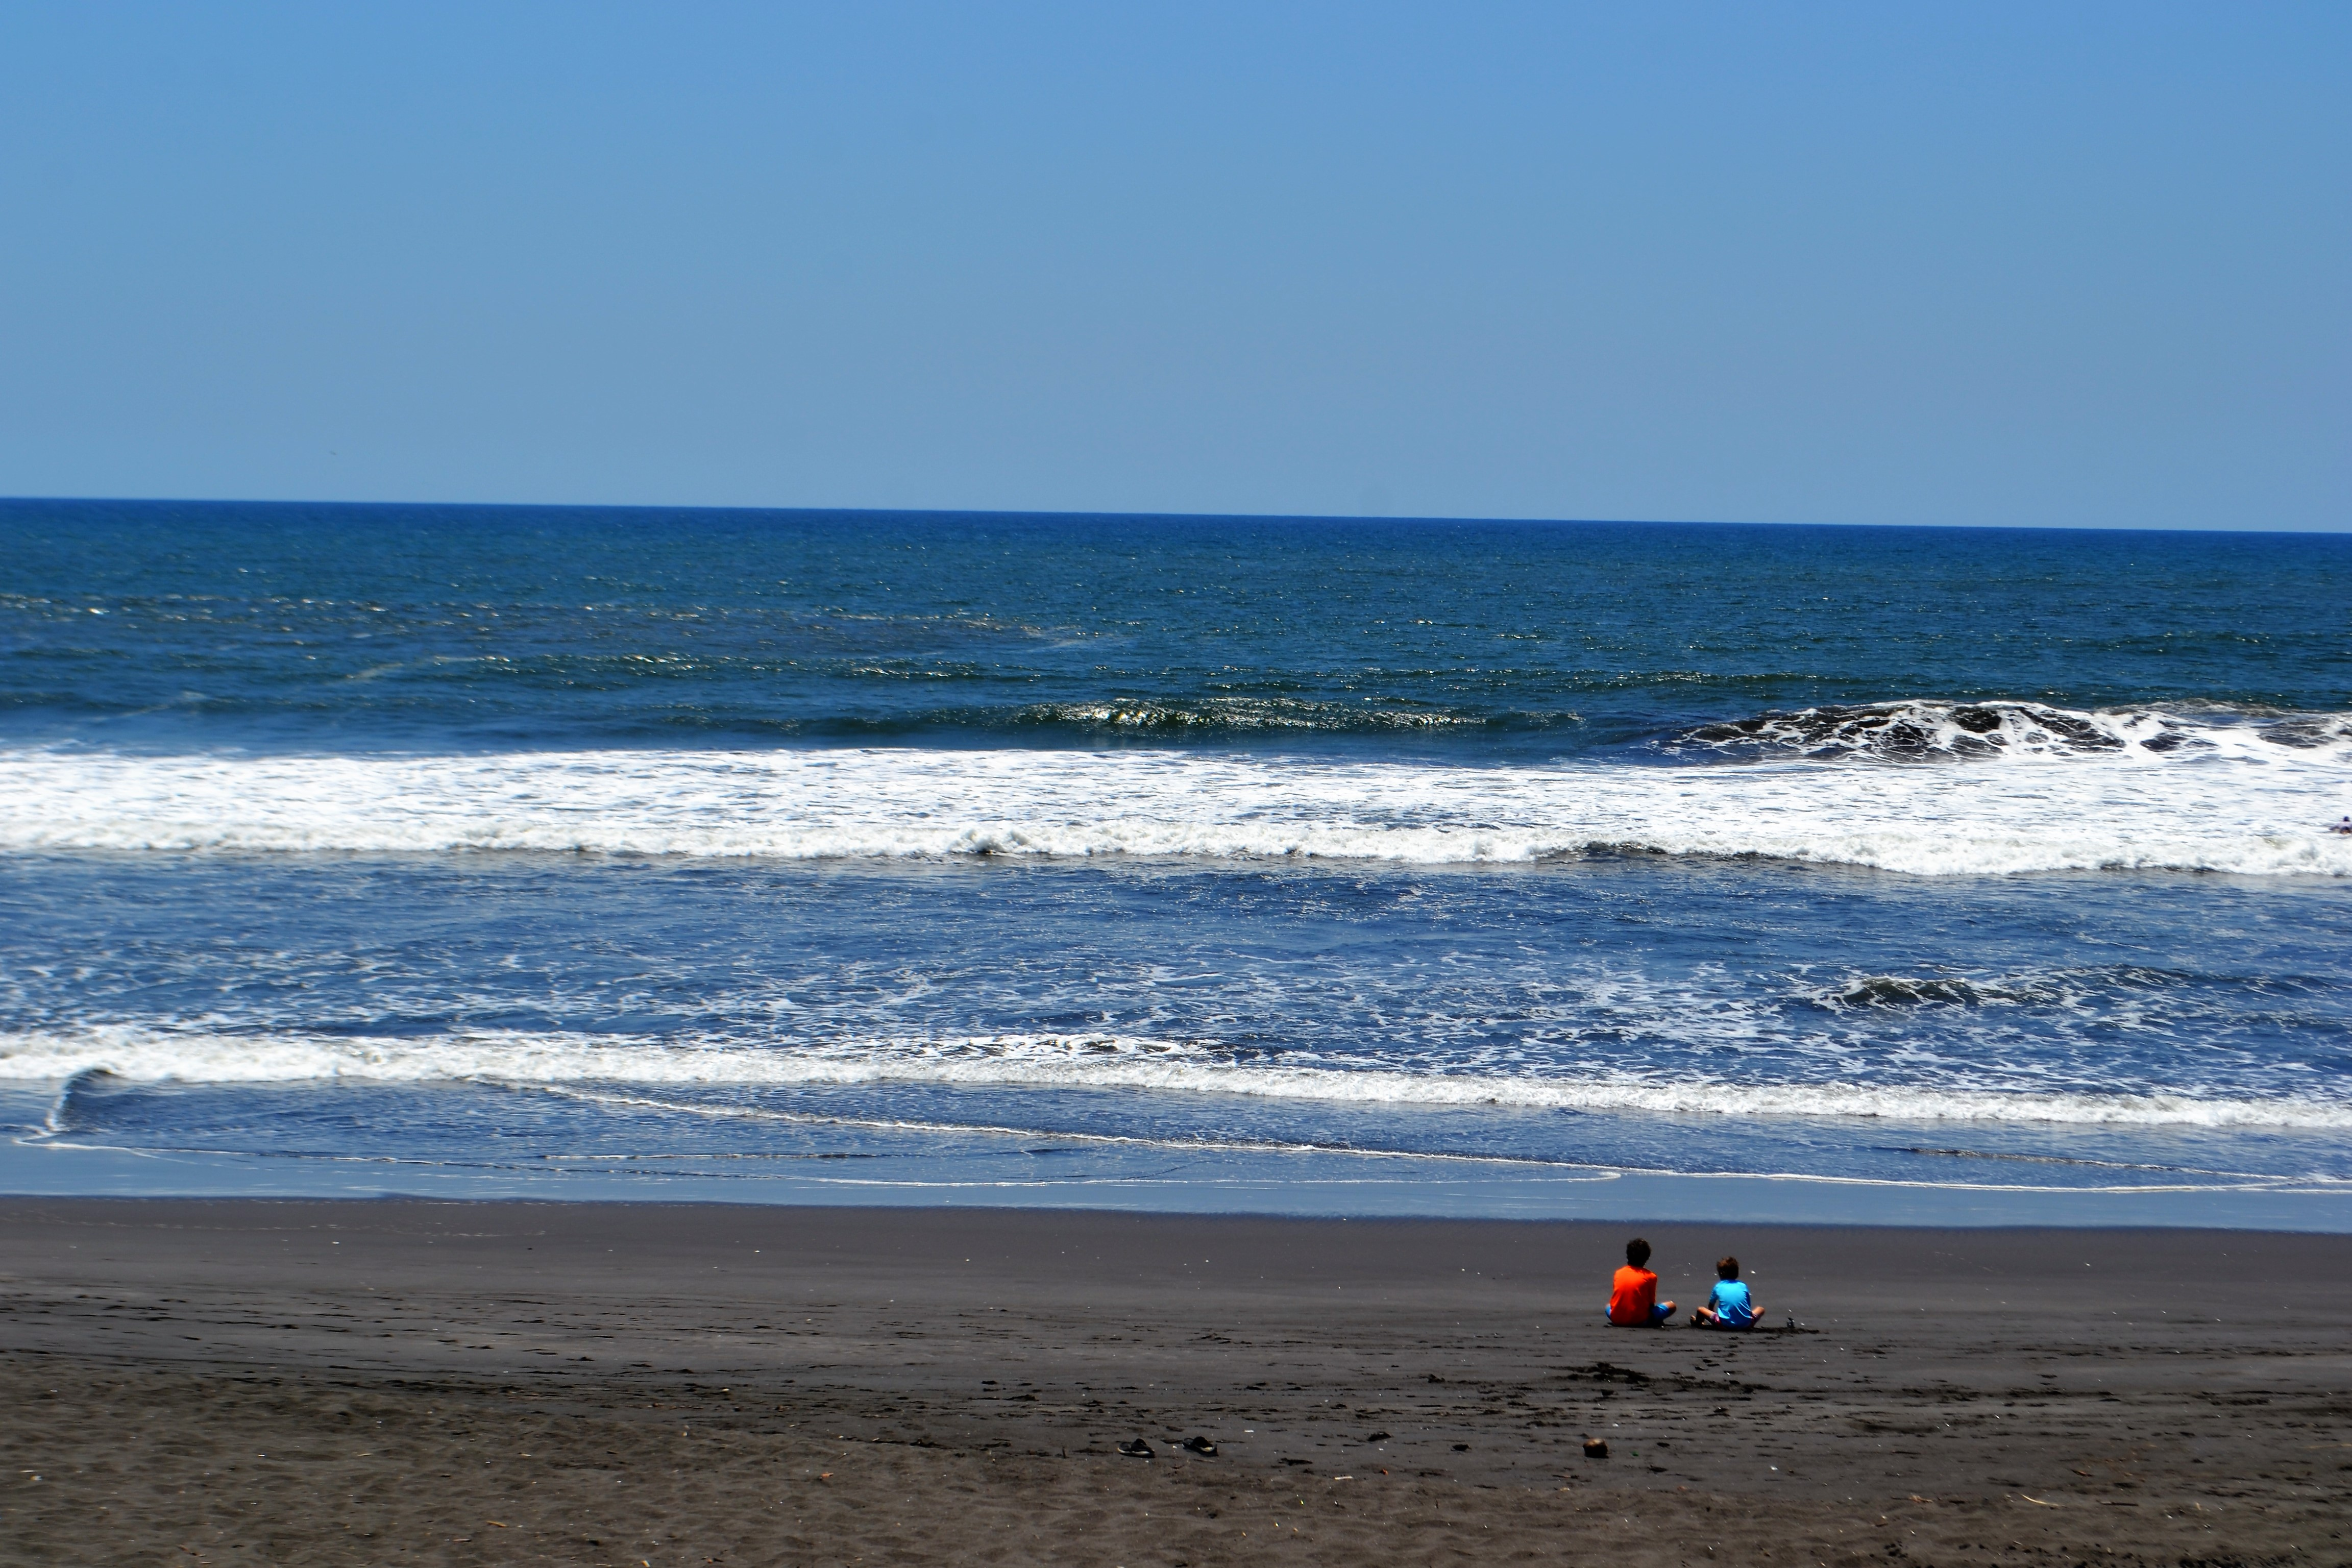 Guatemala Beaches - Surfing Paradise